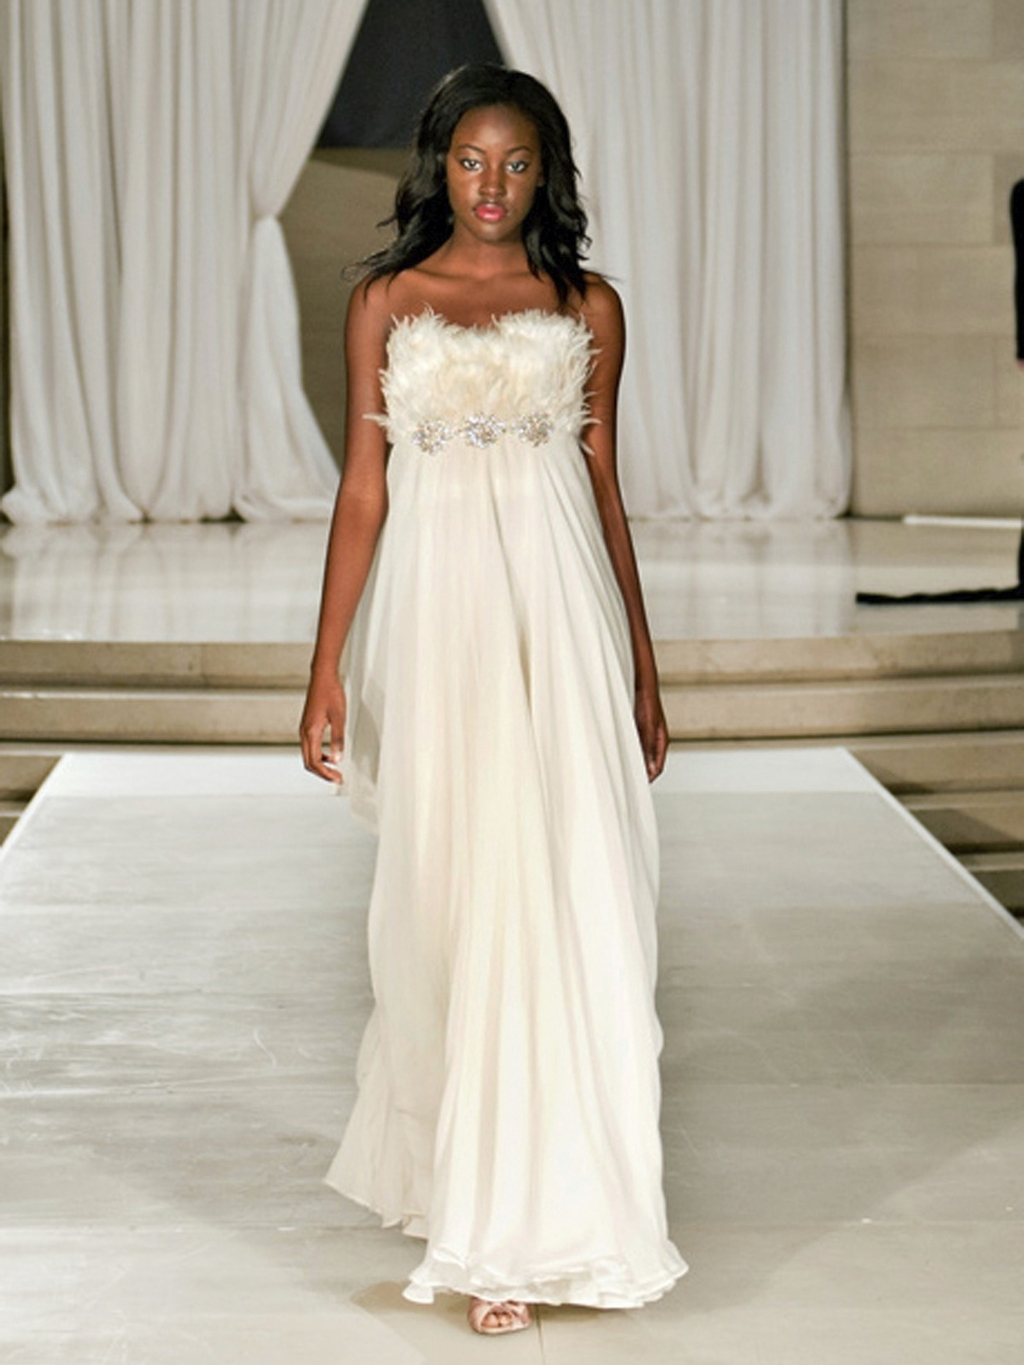 Nha-khanh-wedding-dress-2012-bridal-gowns-empire-strapless-feathers.full